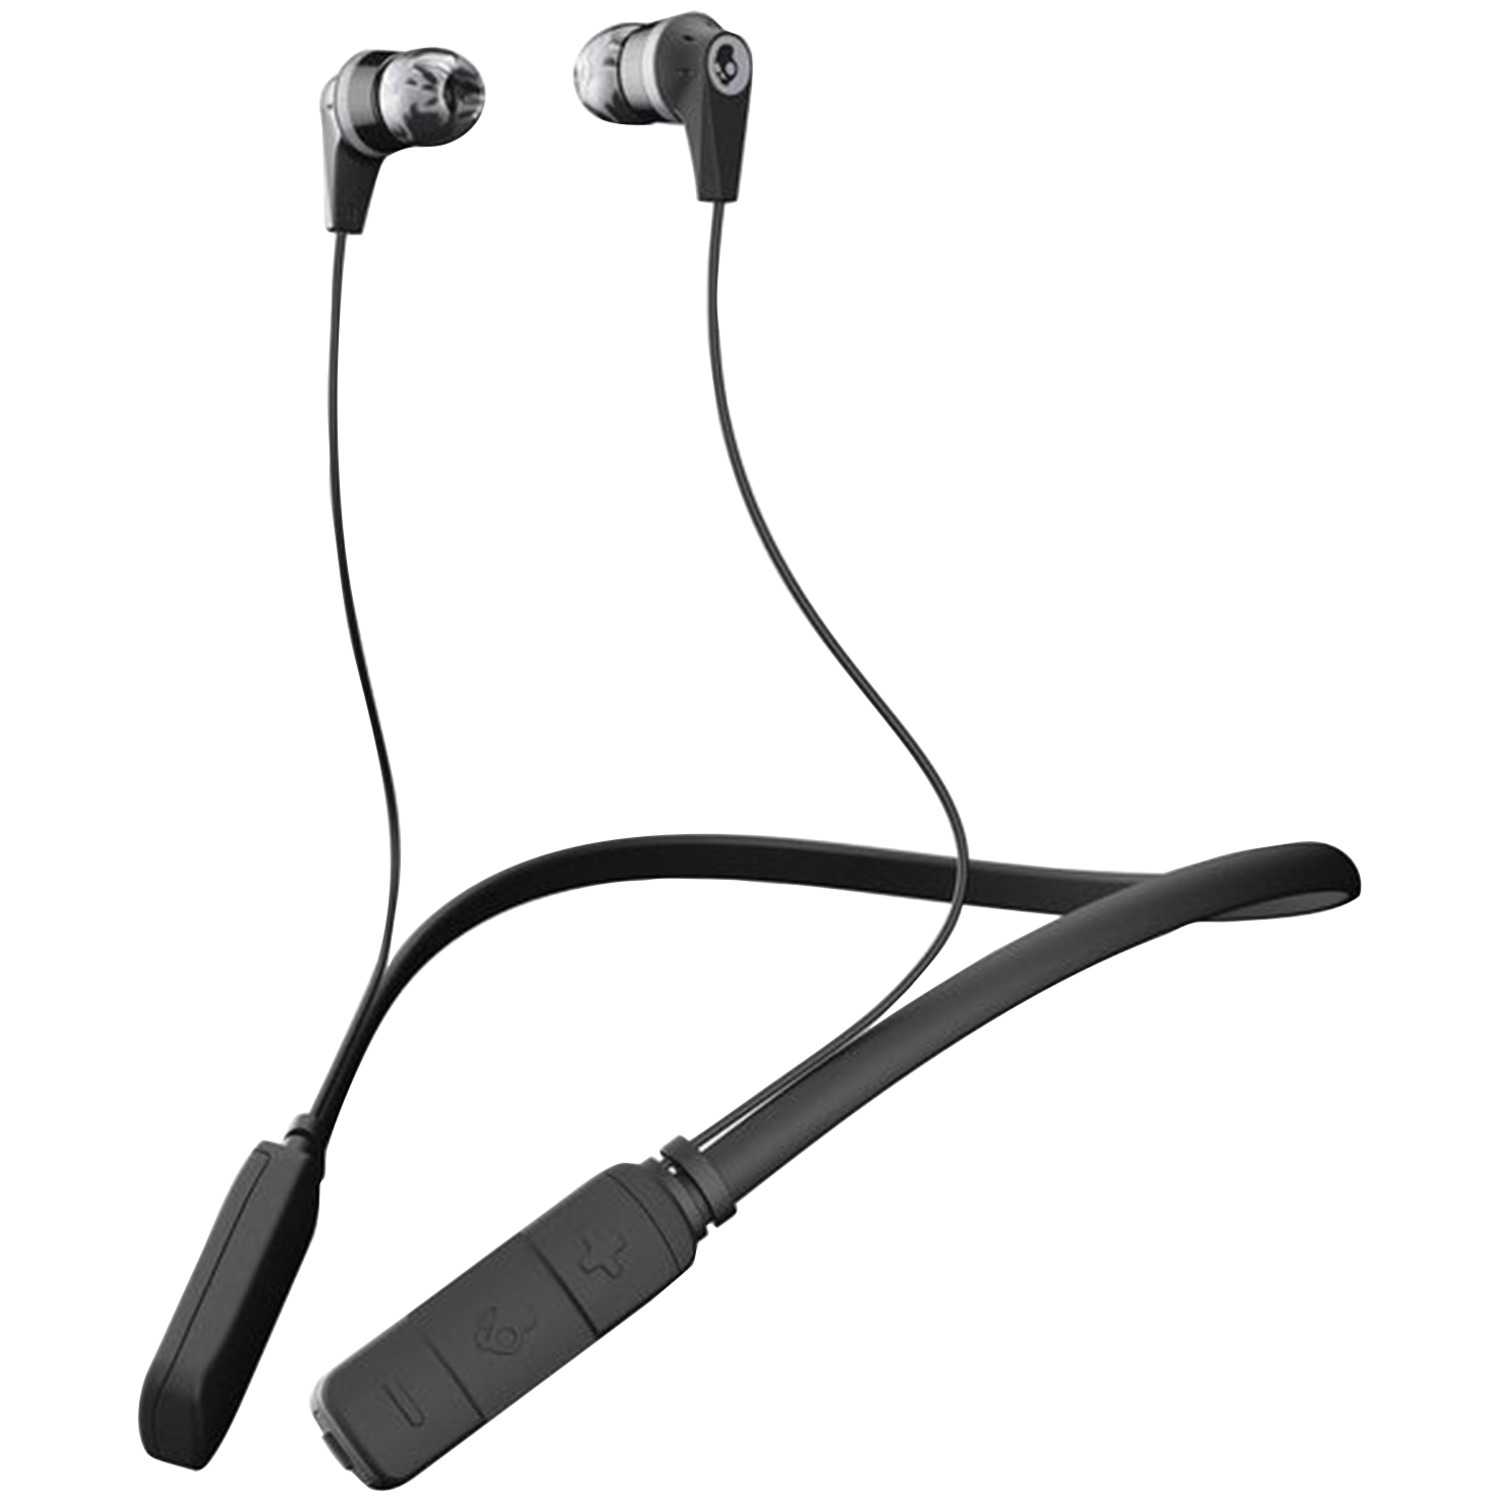 Skullcandy S2ikw J509 Ink D Bluetooth Earbuds With Microphone Black Gray Walmart Com Walmart Com